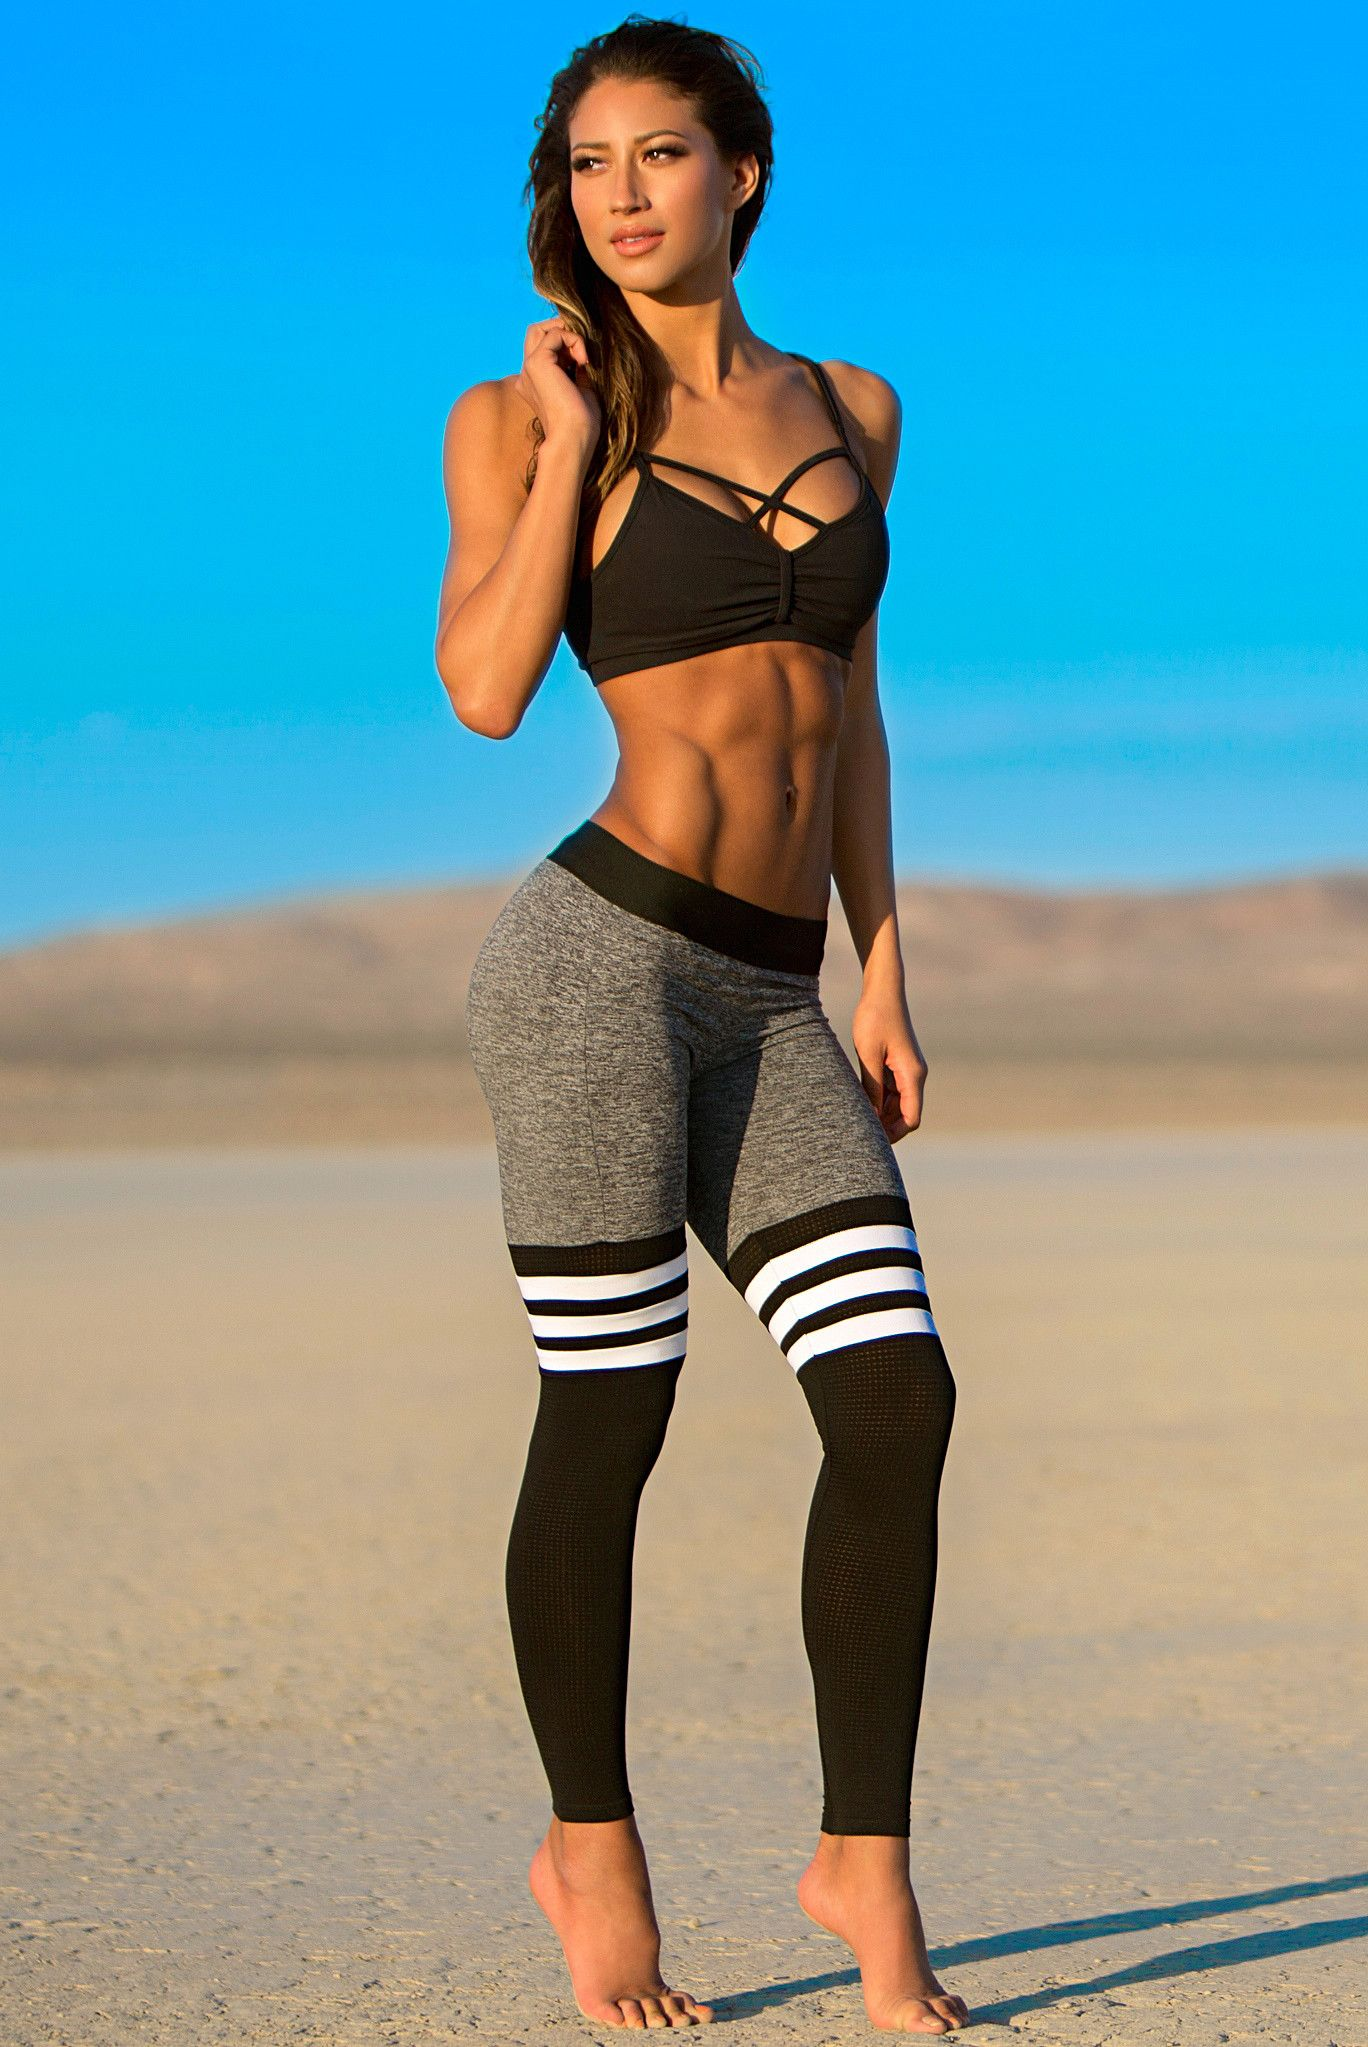 2da54f84364f5 It's not just a look... it's a lifestyle. Bombshell Sportswear ~ high  quality, super sexy workout wear created and designed in Los Angeles.